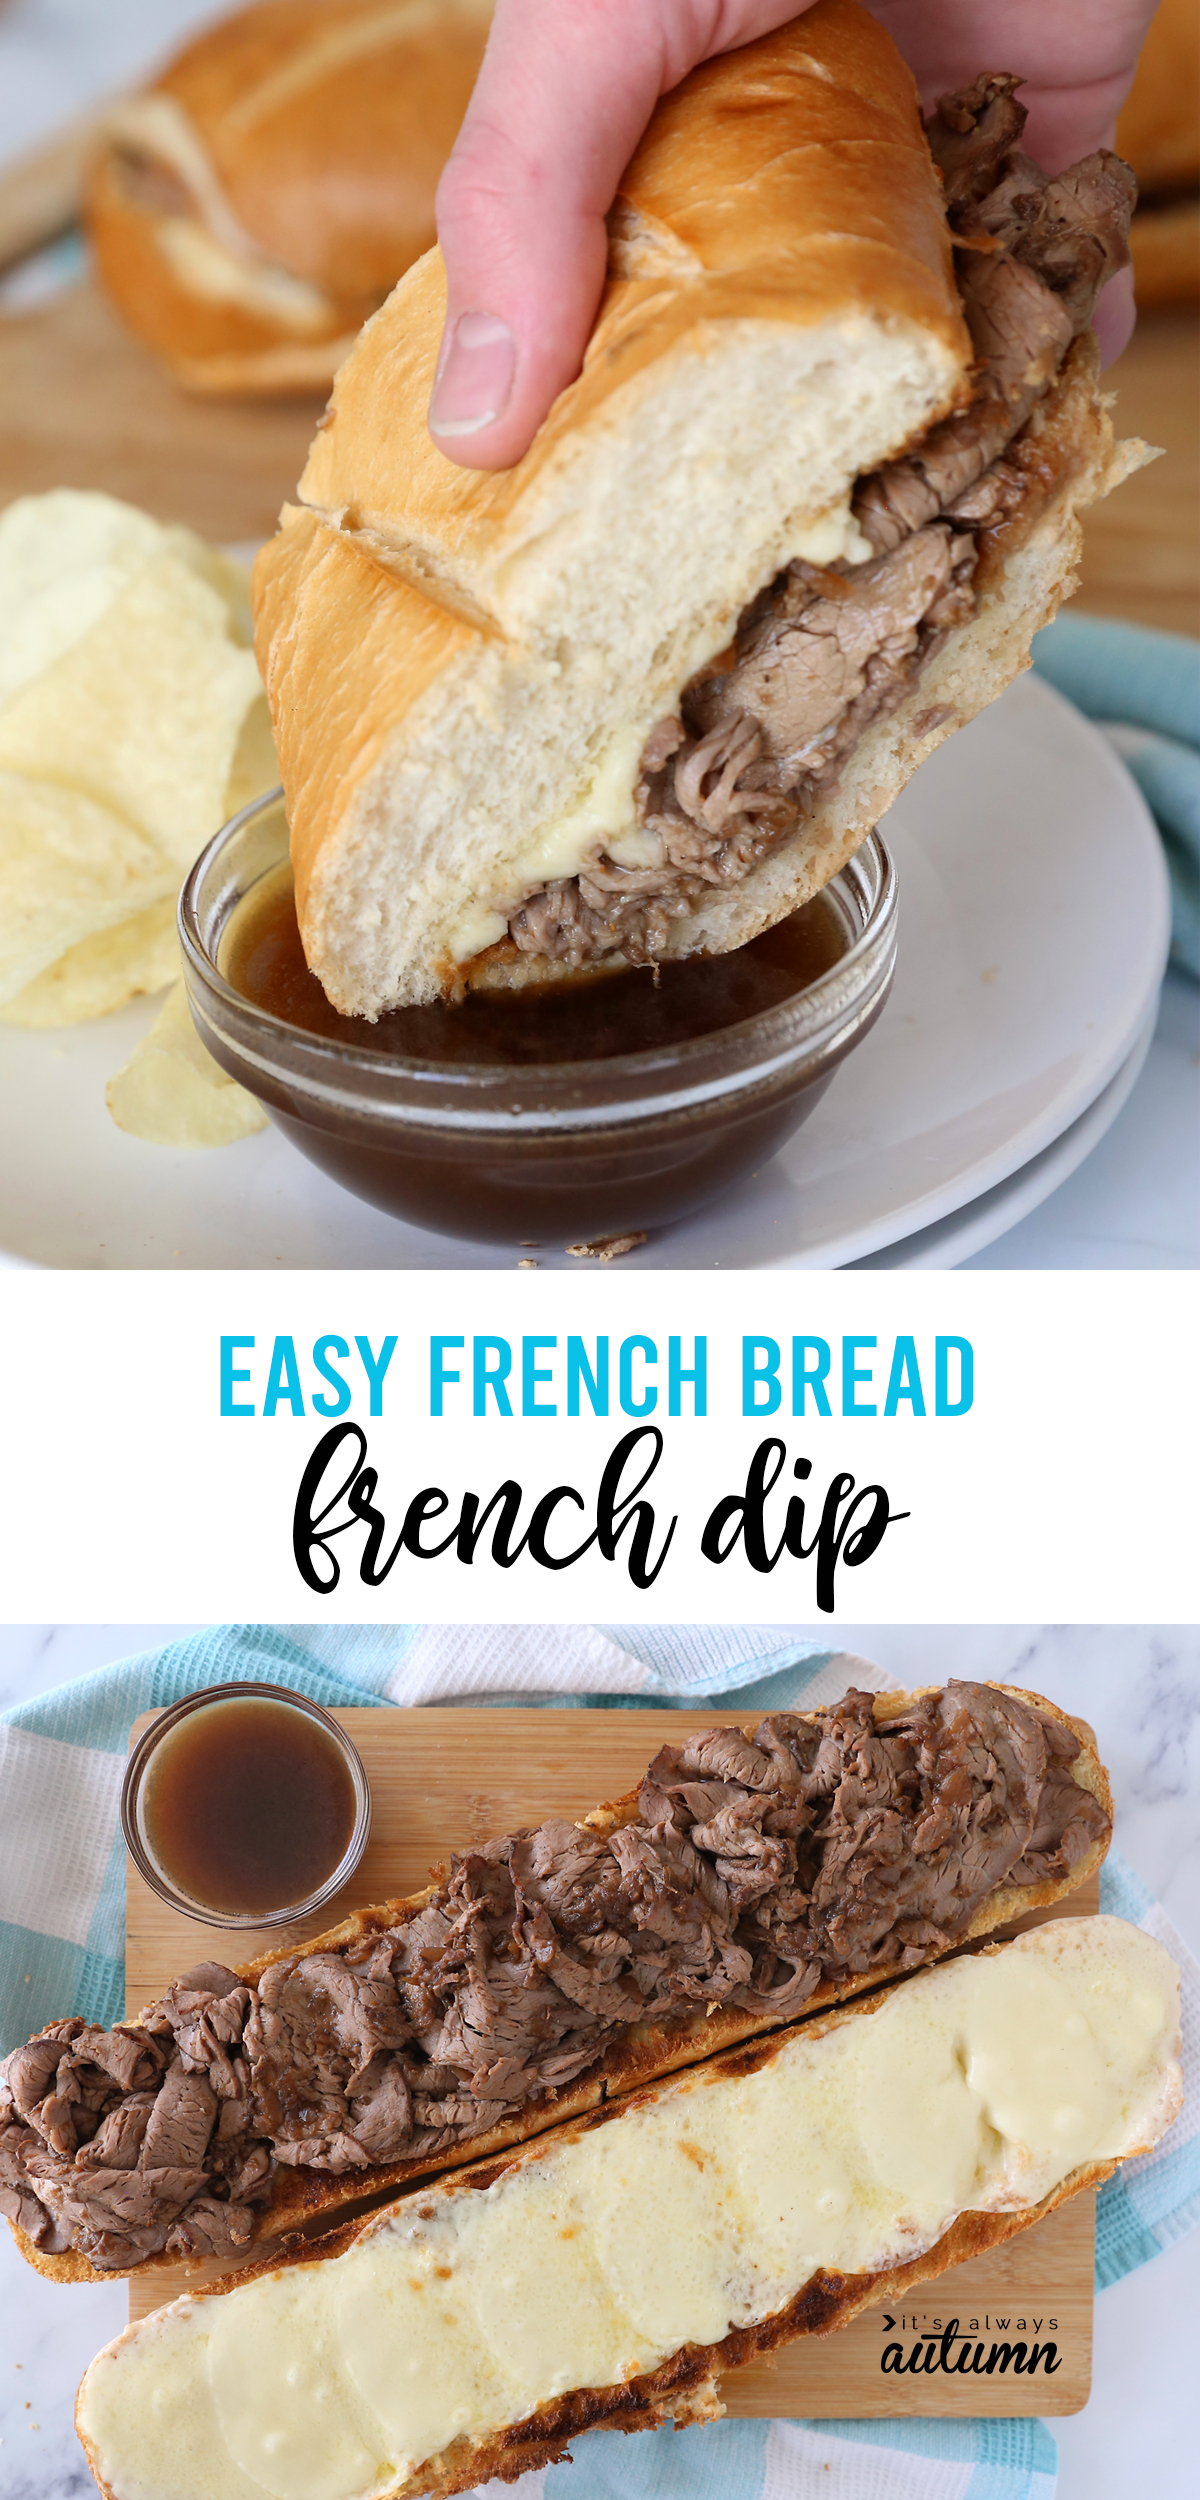 Hand dipping roast beef sandwich into au jus; open face french dip sandwich made on a loaf of french bread